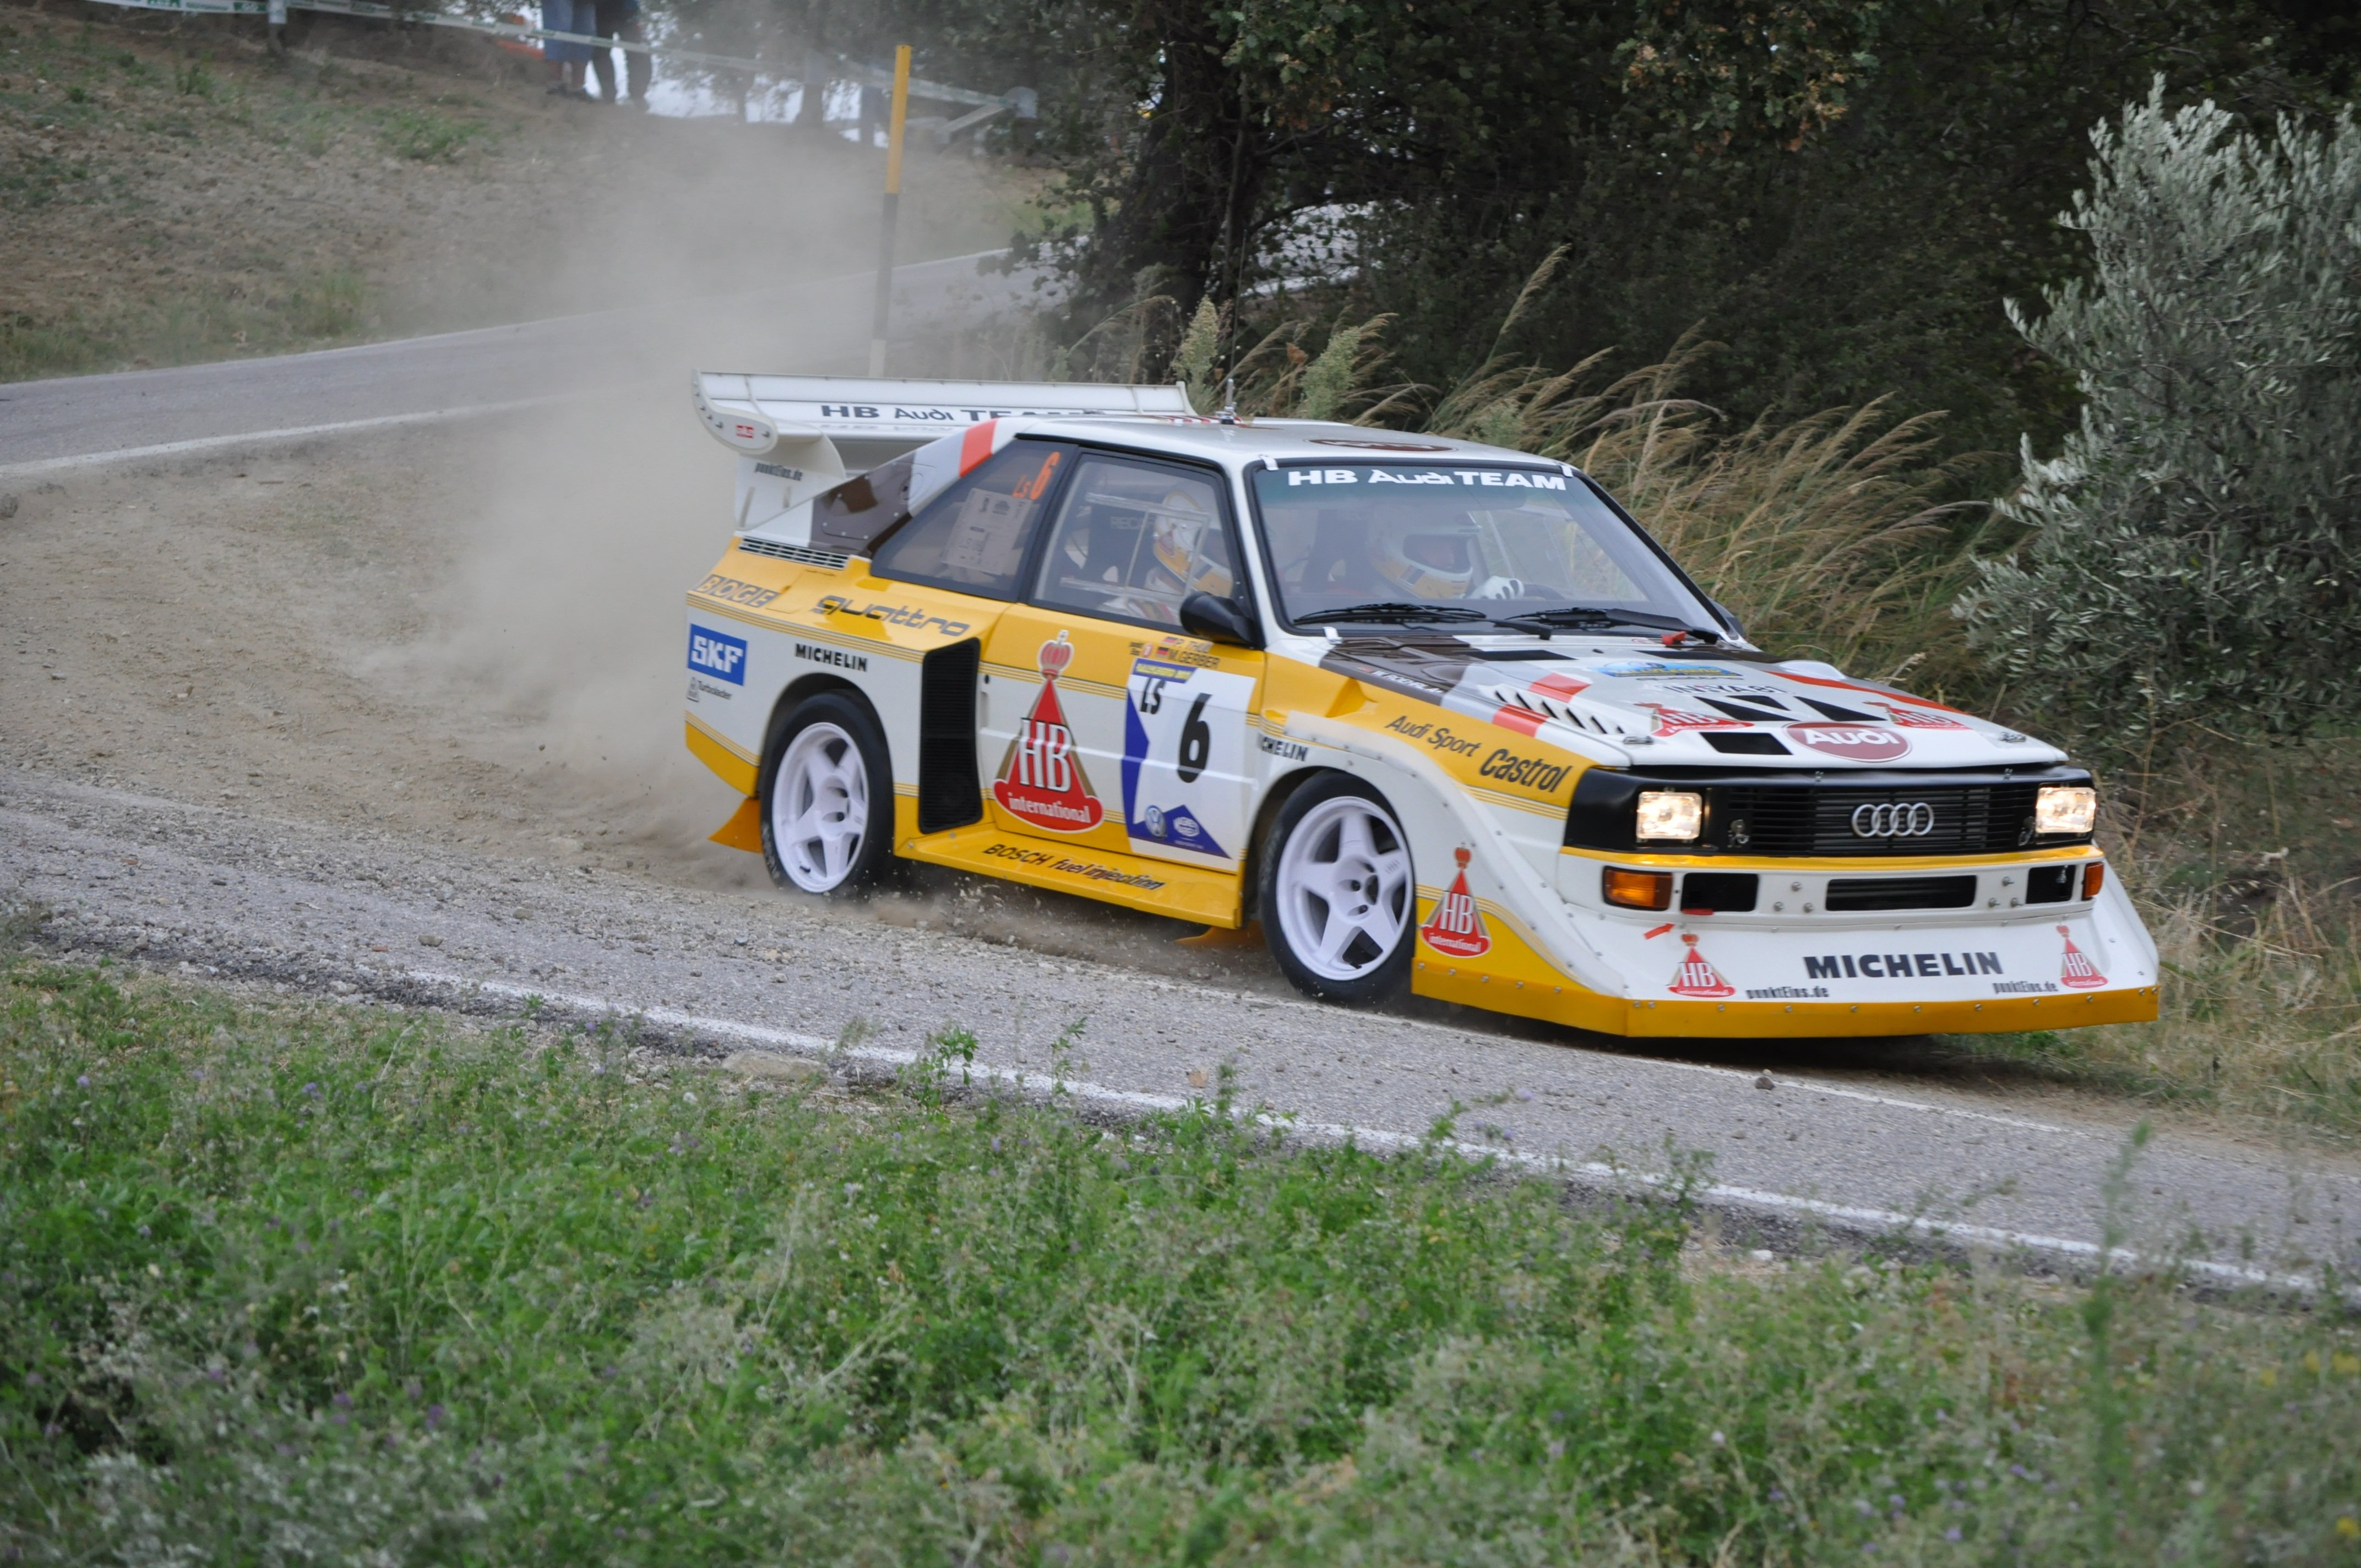 audi sport quattro rally groupe b cars sport wallpaper 4288x2848 563839 wallpaperup. Black Bedroom Furniture Sets. Home Design Ideas